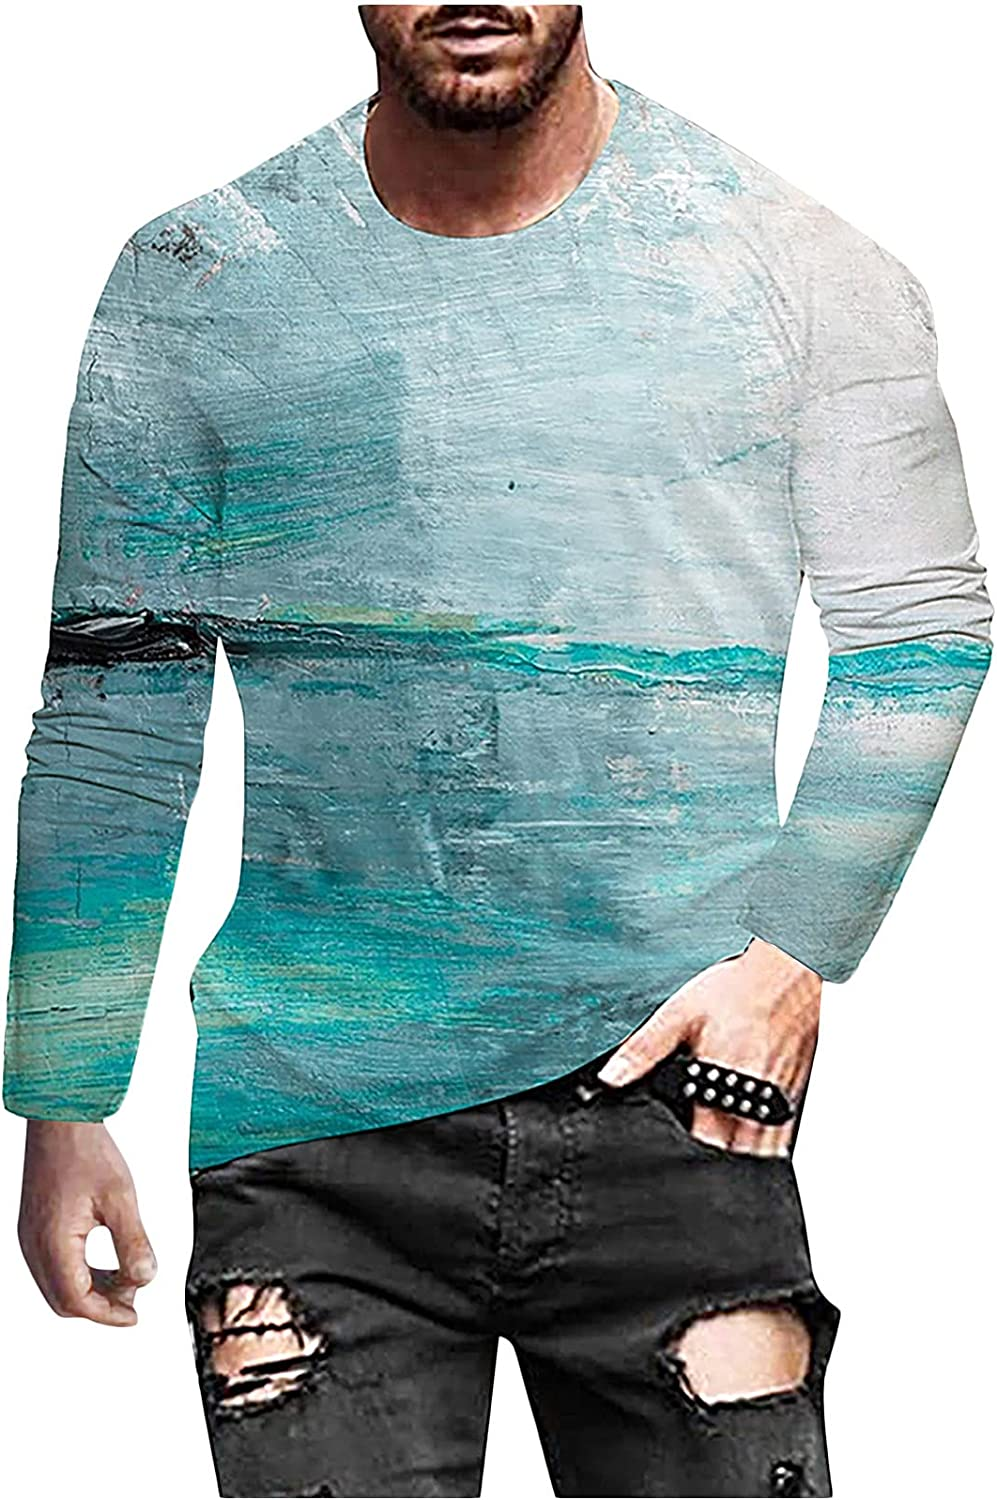 Men's Tops Ranking TOP18 Max 42% OFF 3D Vintage Printed Street Style T-Shirt Casual Retro